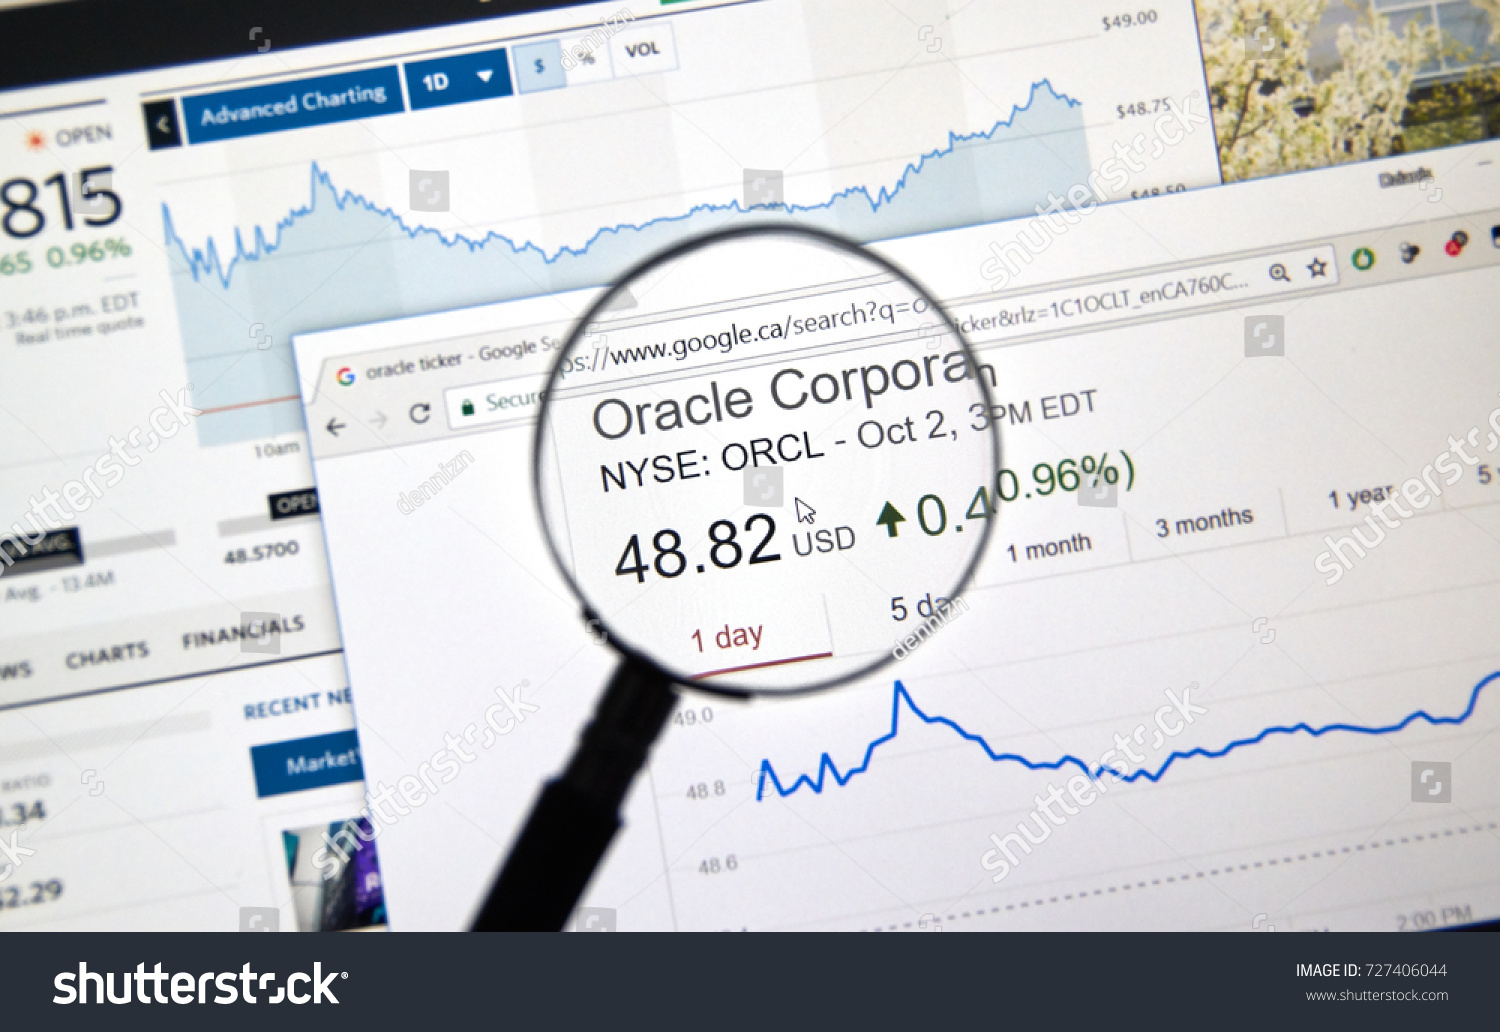 Orcl Stock Quote Extraordinary Montreal Canada October 2 2017 Oracle Stock Photo 727406044